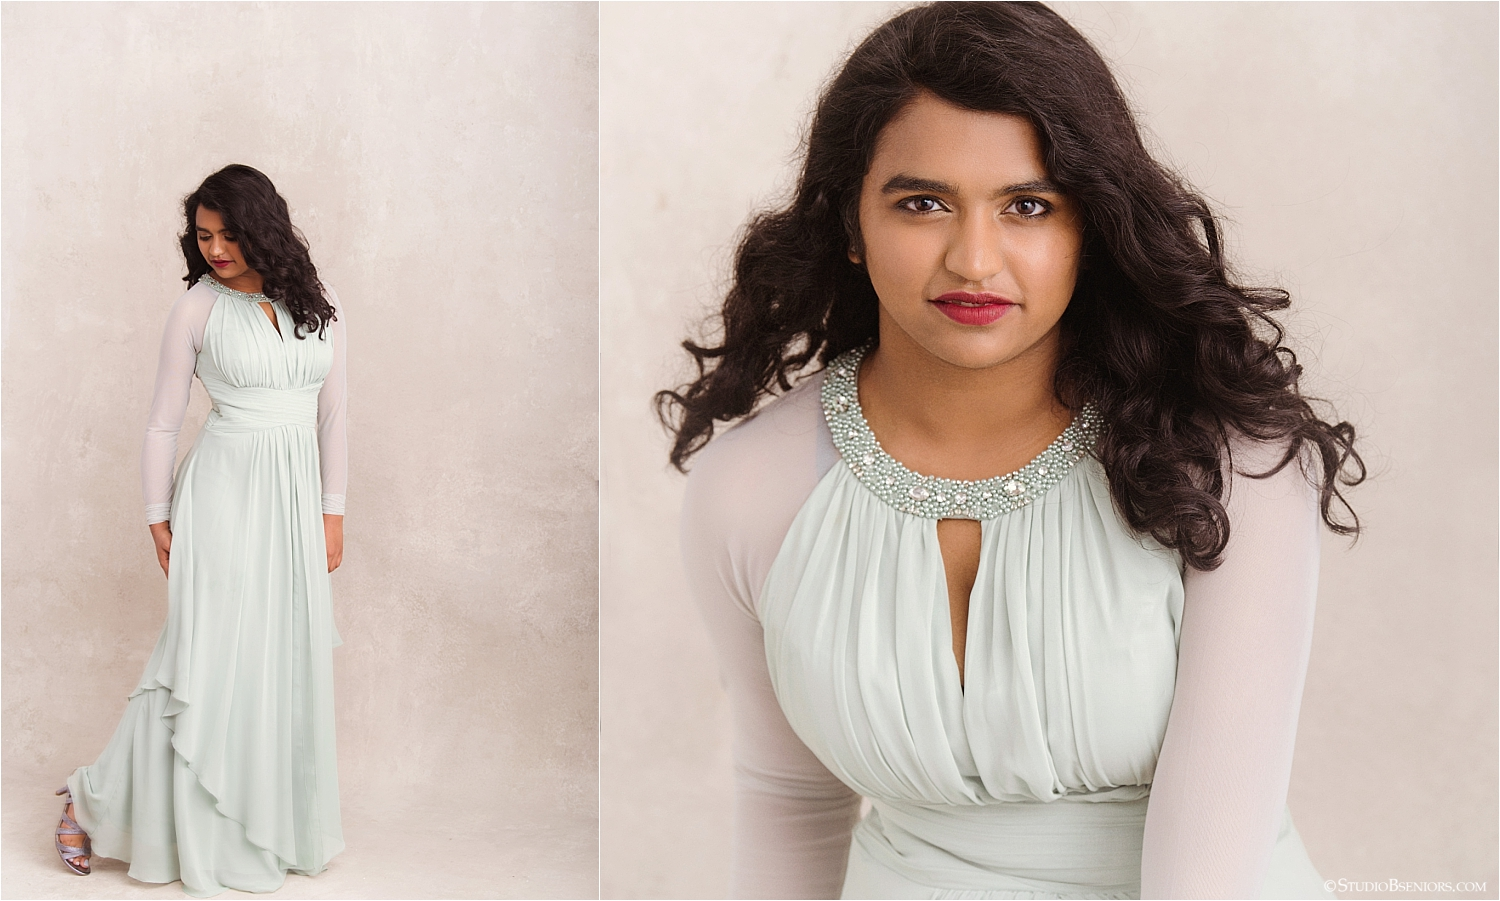 Beautiful Indian girl in mint green formal dress for senior pictures_0034.jpg